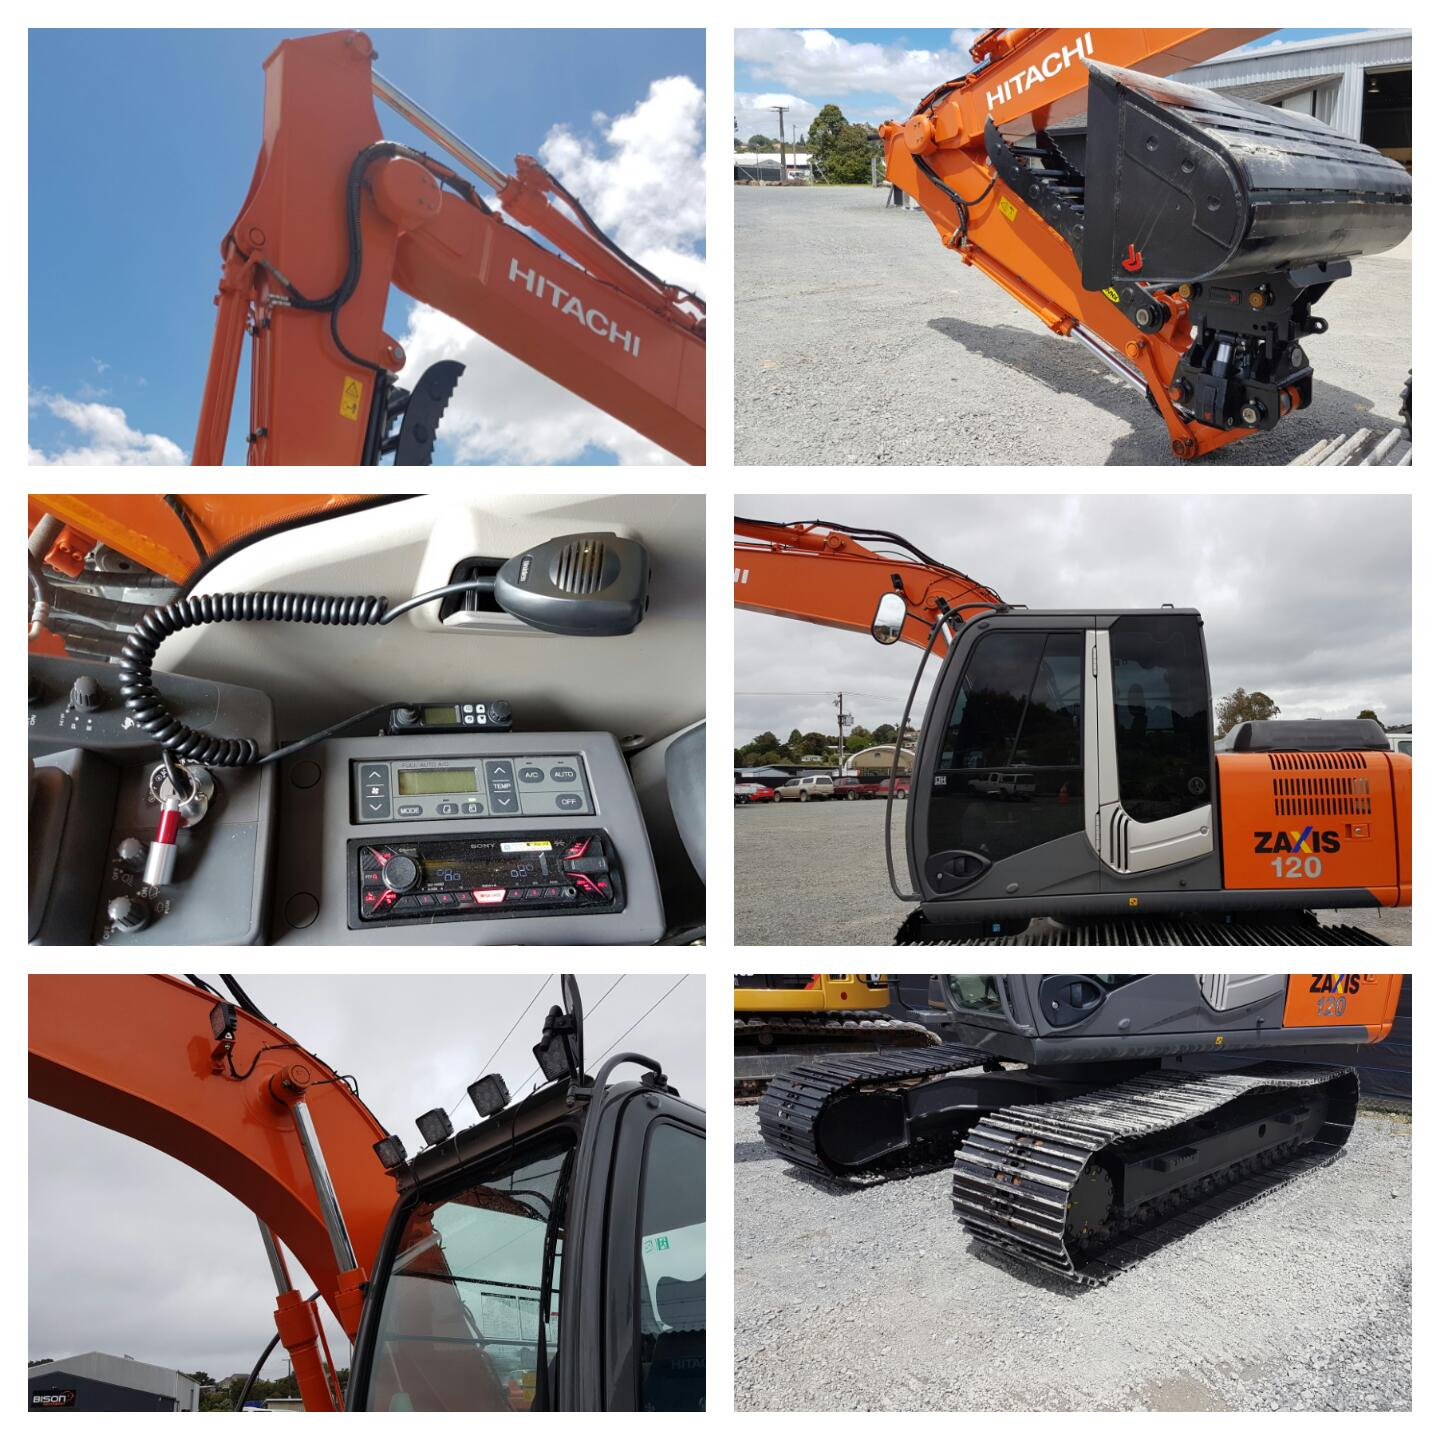 2013 ZX120-3 Fit-up - Tints, LED worklamps, 700mm Grousers, CB radio & Bluetooth stereo, Isolator switch, Knapp Thumb & Robur Tilt Hitch + Wide Bucket!